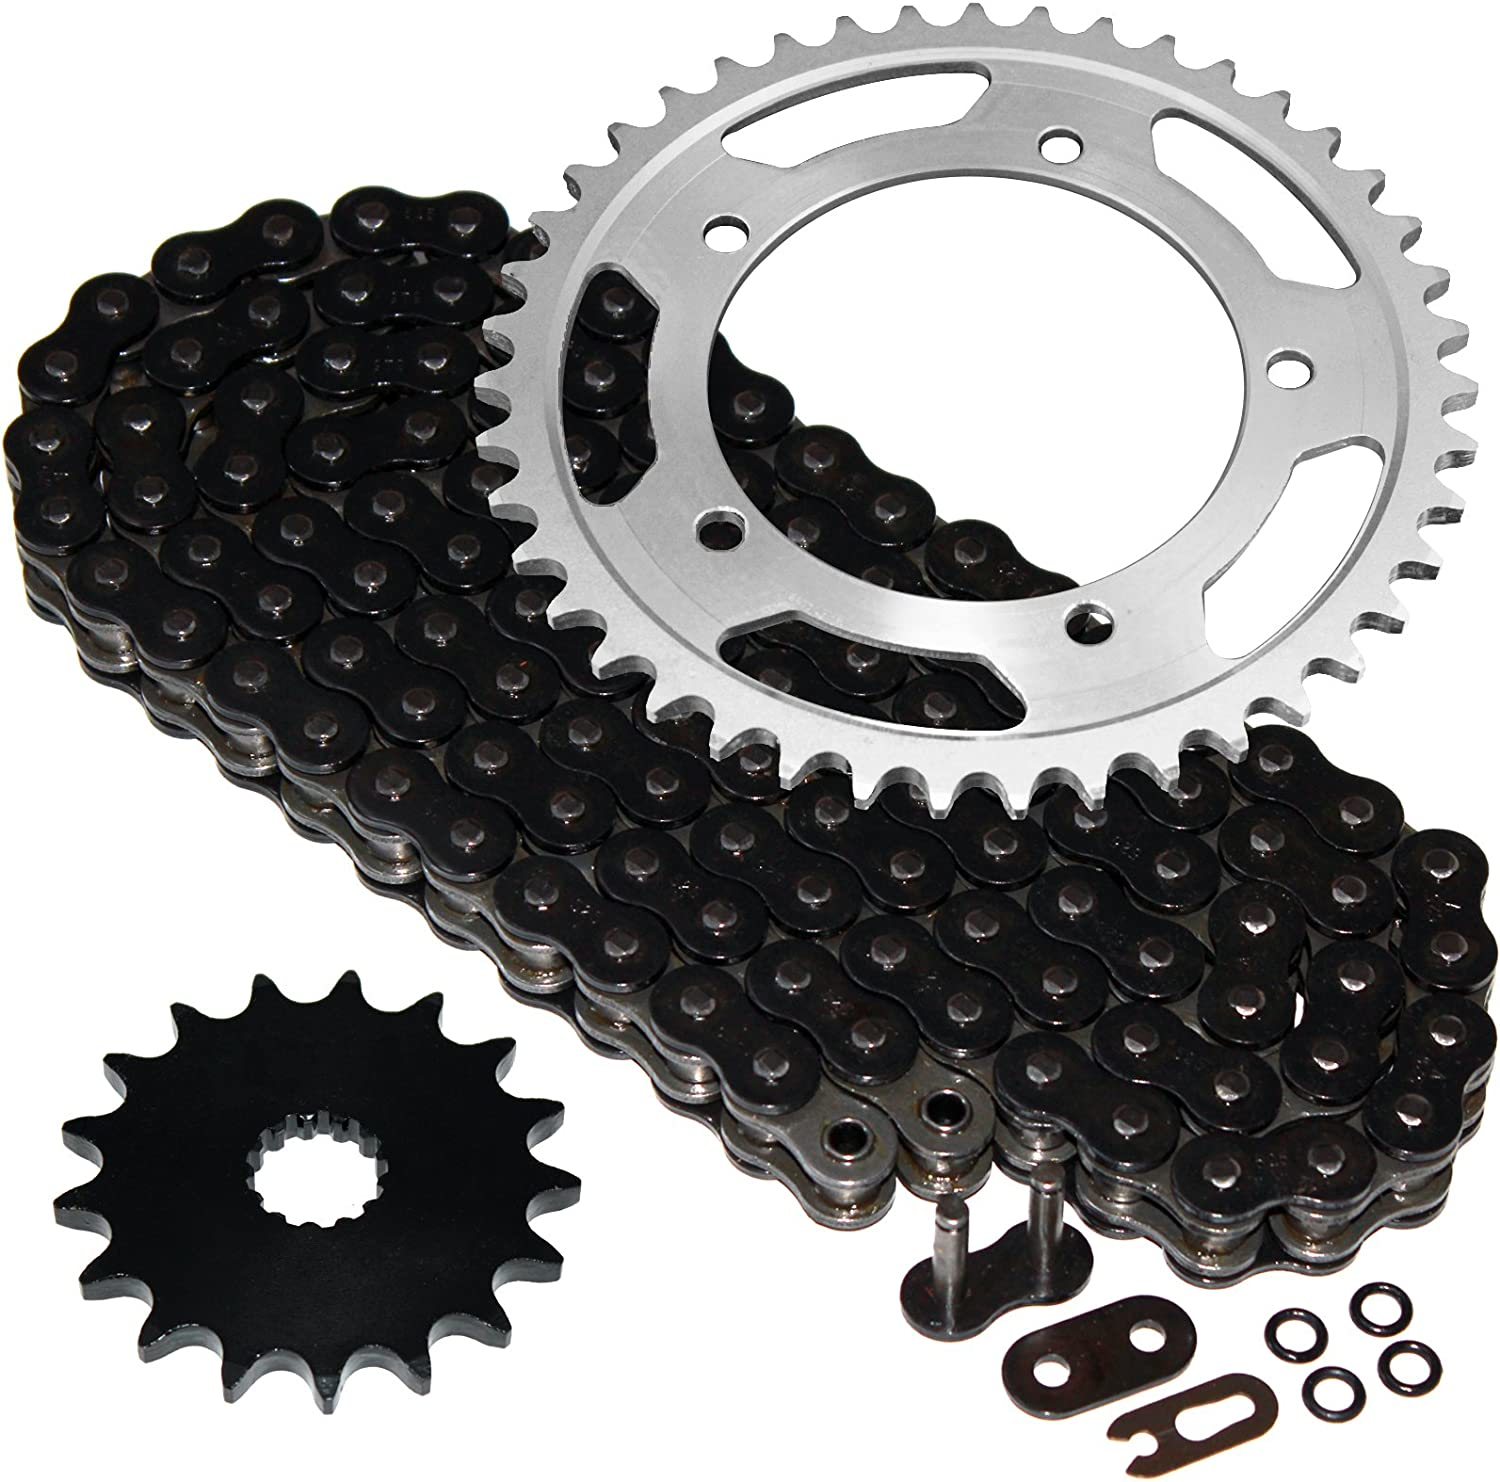 Austin Mall Caltric Black O-Ring Drive Chain with Direct sale of manufacturer Sprockets Kit Compatible